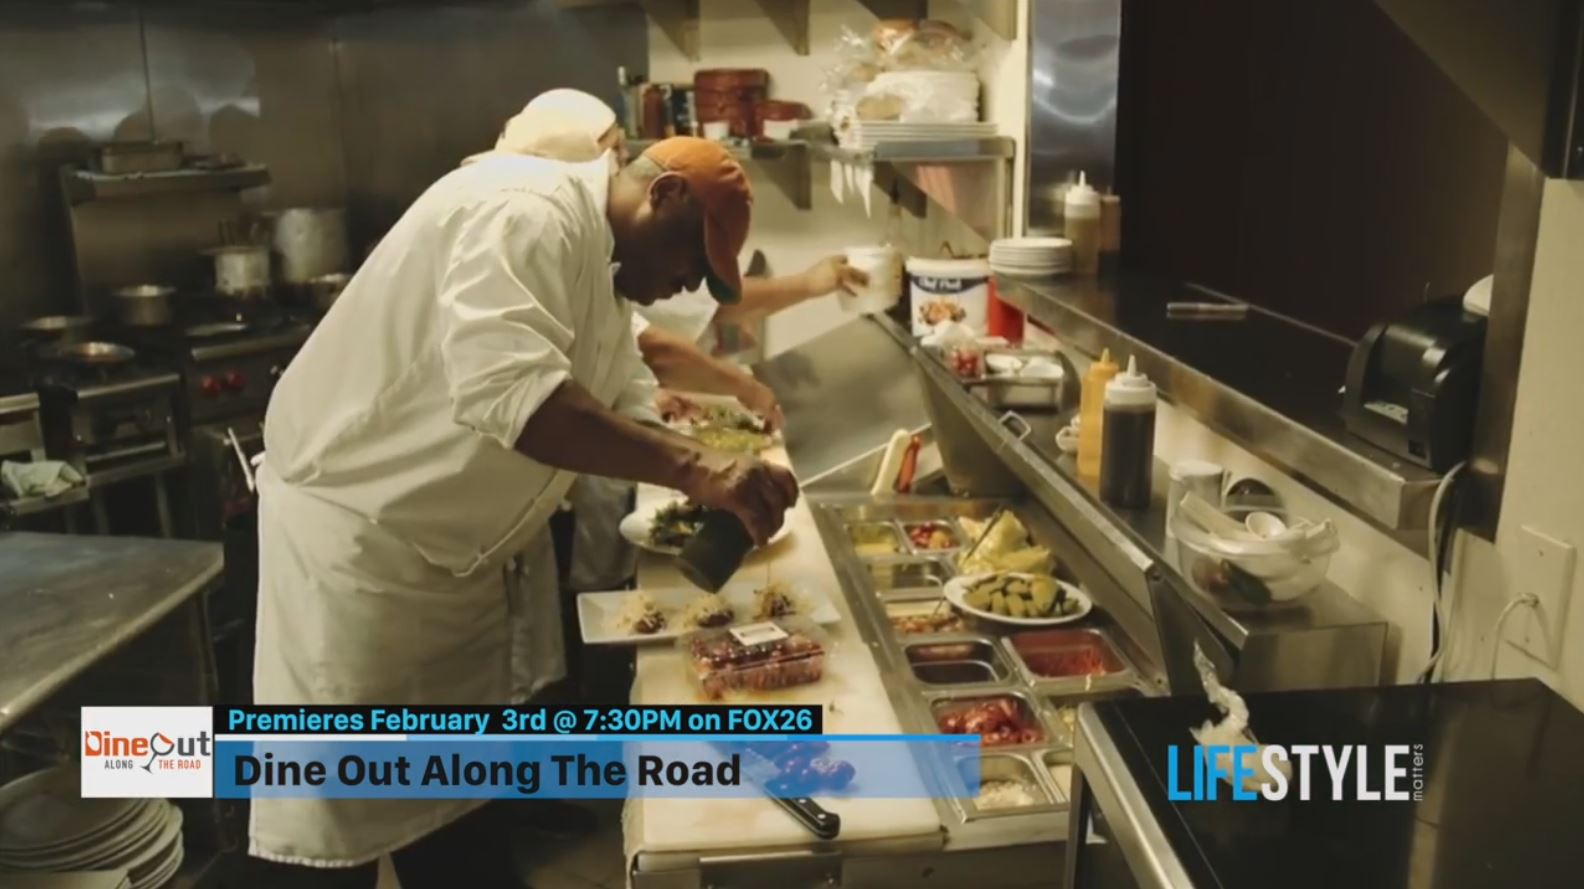 DineOut Along The Road host Ray O'Canto talks about where he is taking the 5th season of his show